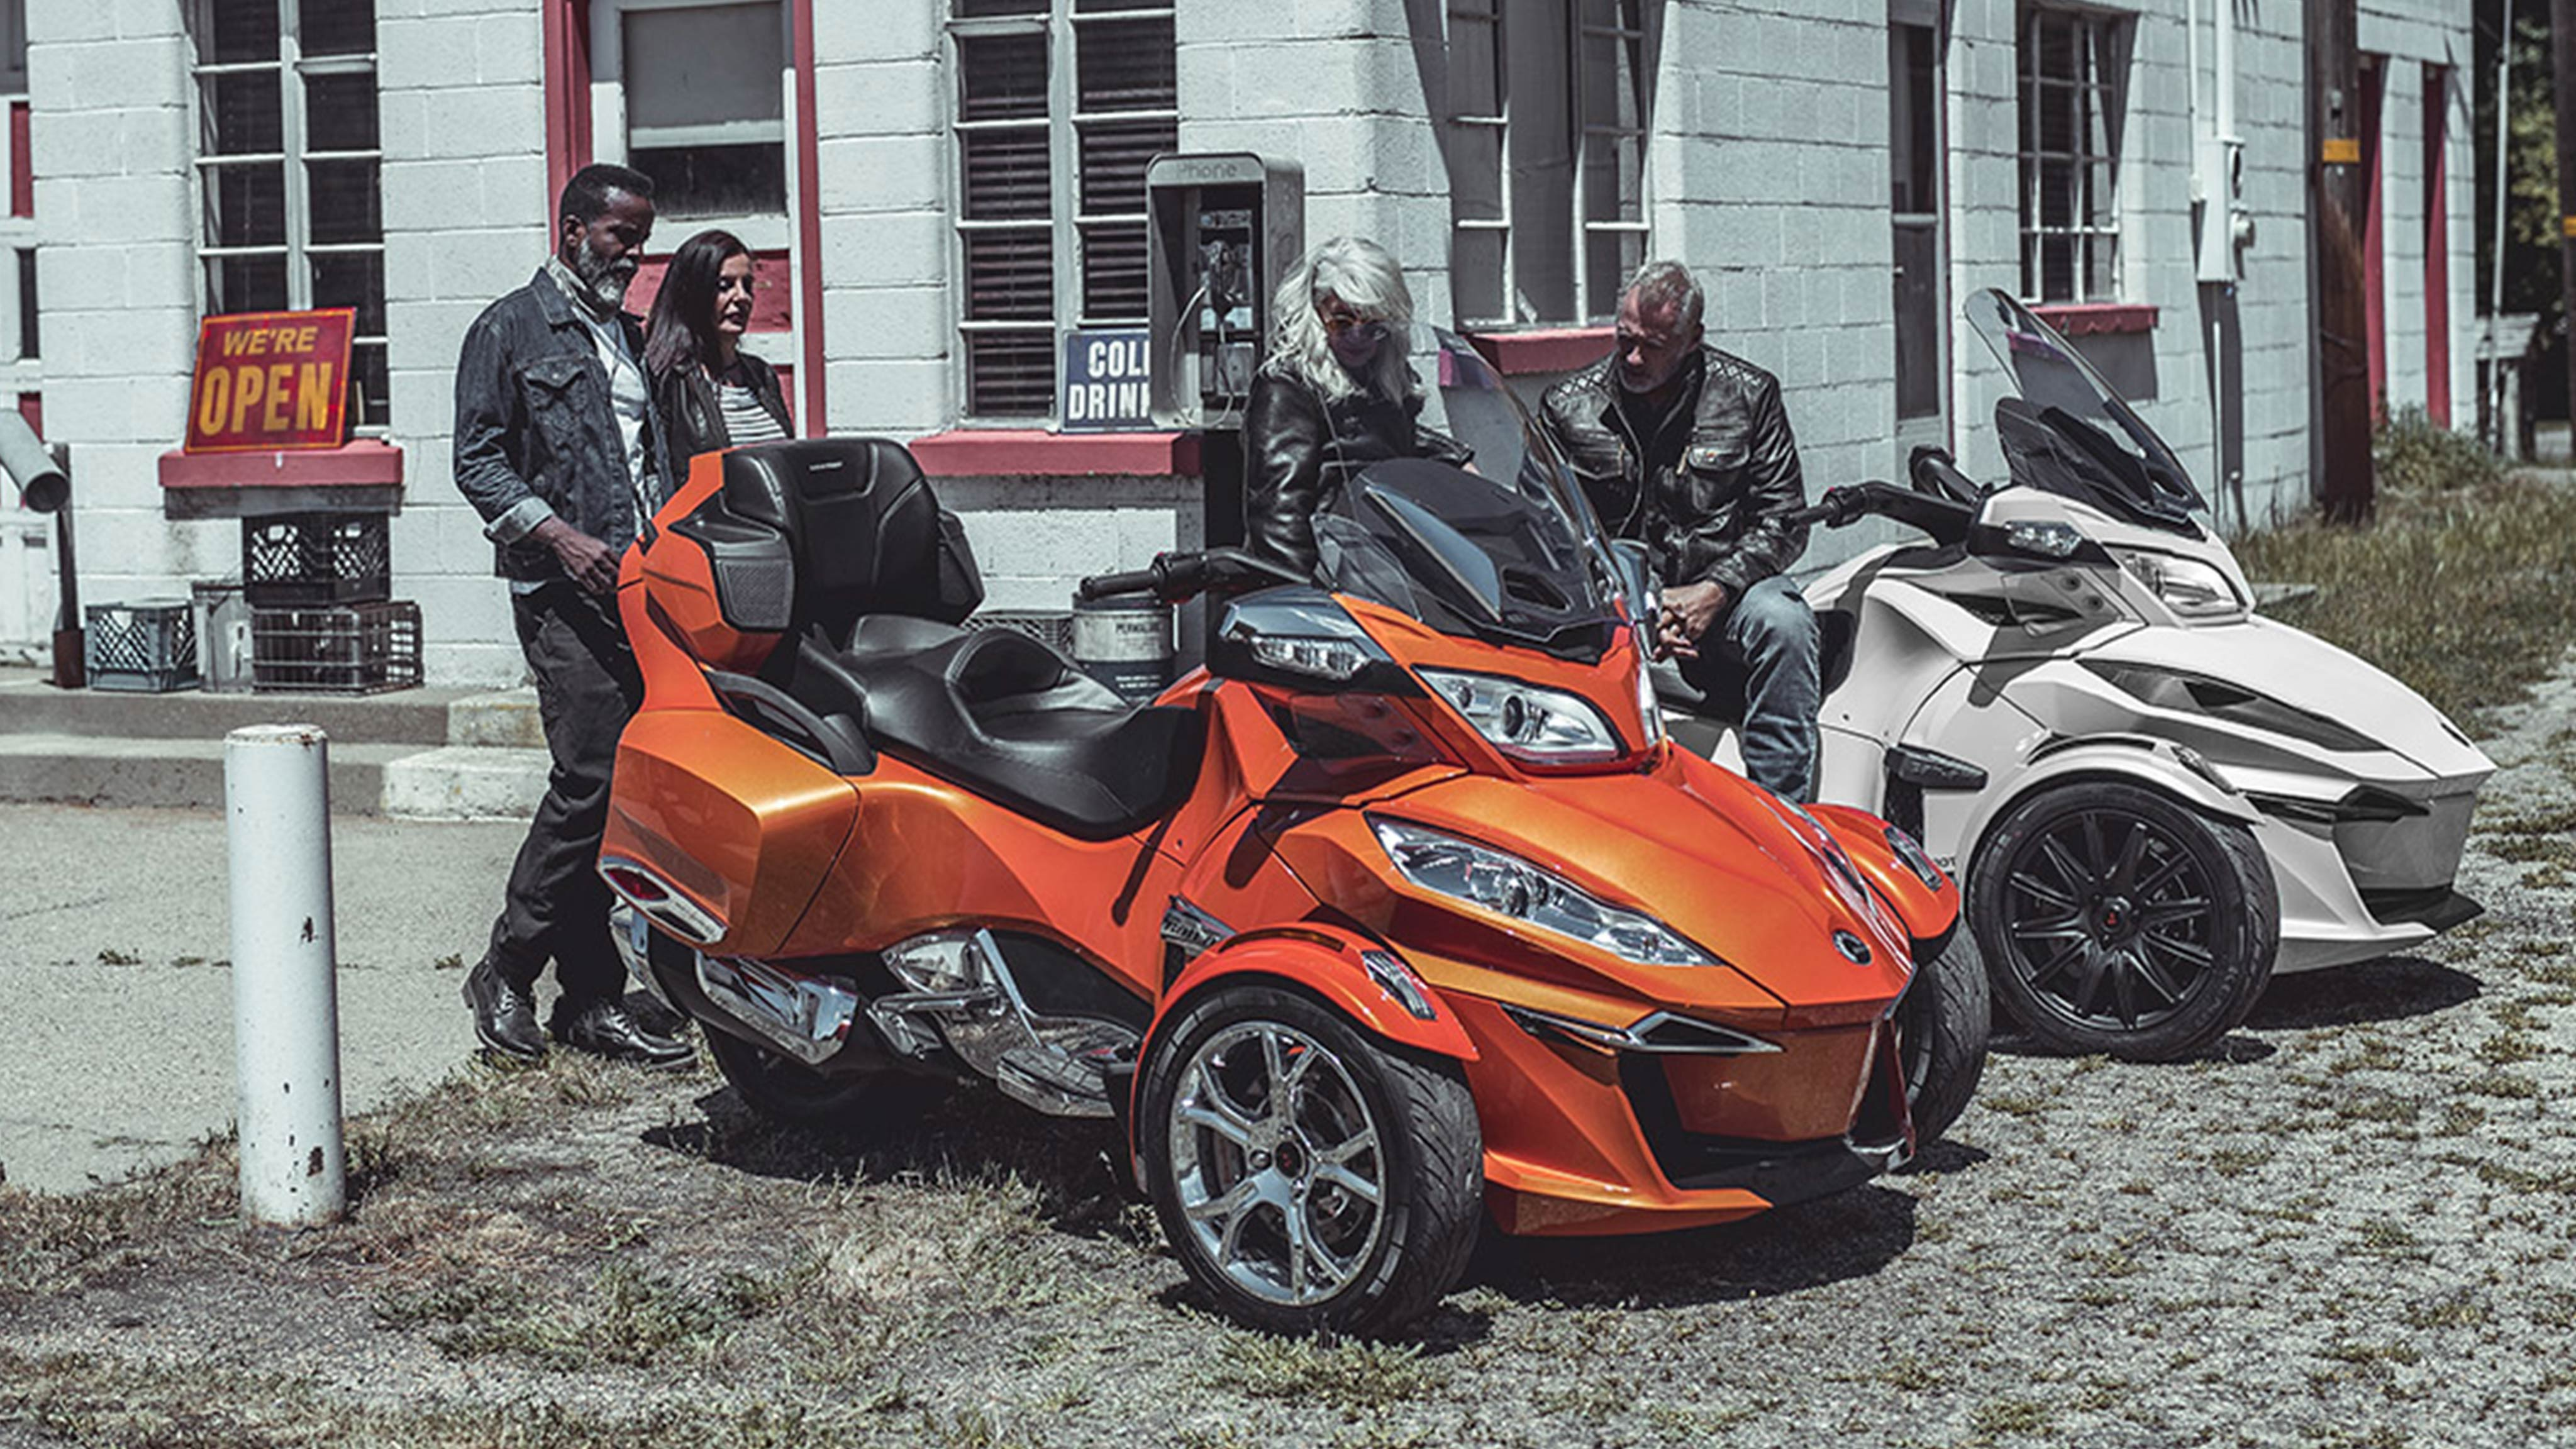 People chatting around 2 2019 Can-Am Spyder RT models, in front of a Gas station